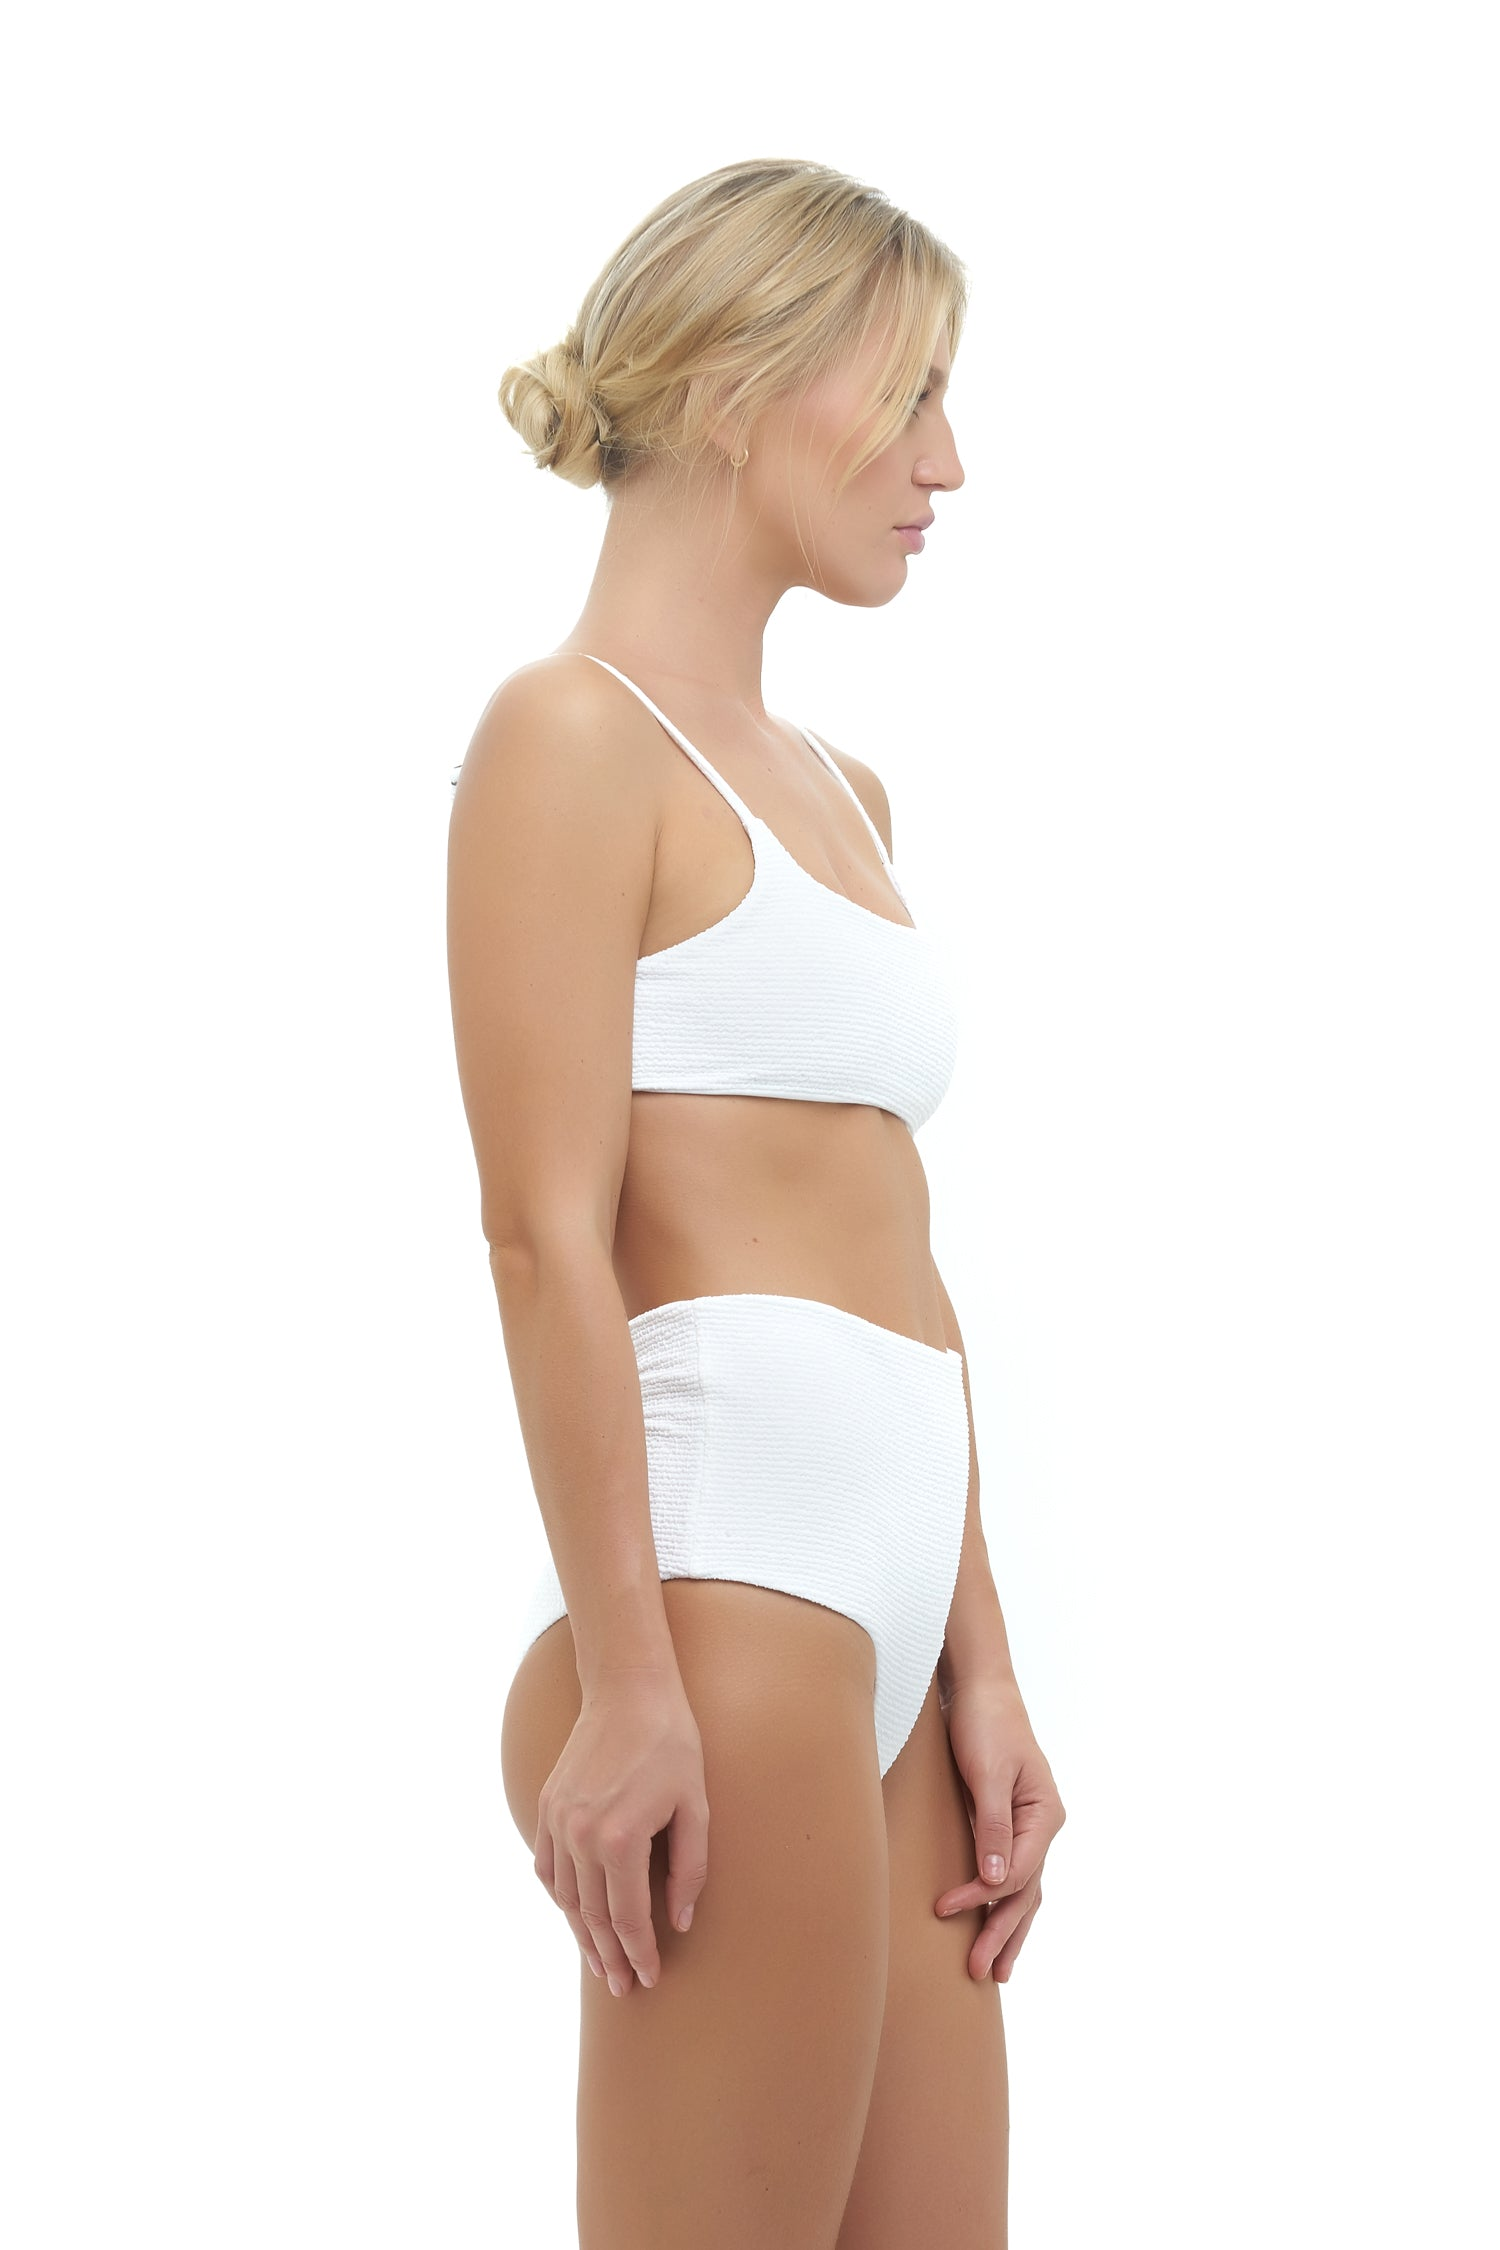 Storm Swimwear - Cannes - High Waist Bikini Bottom in Storm Le Nuage Blanc